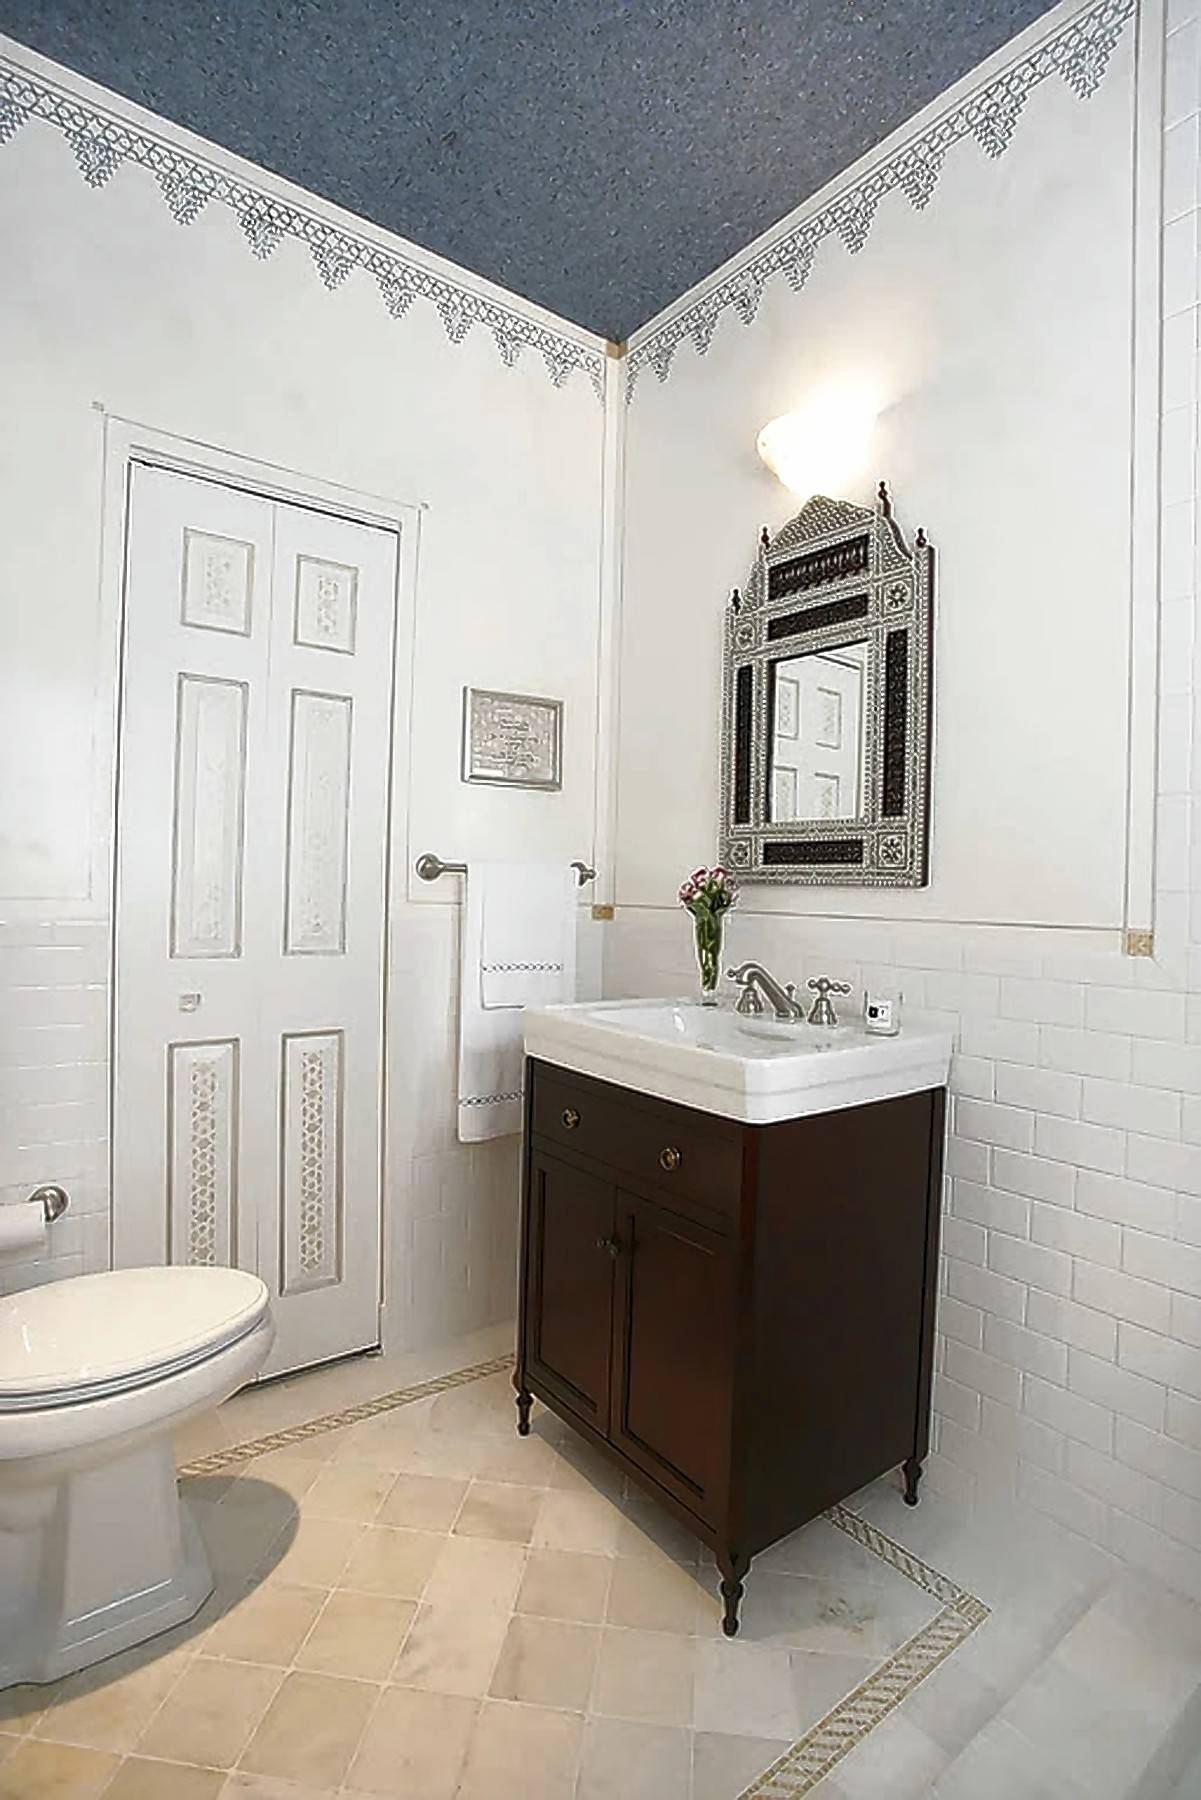 All-white bathrooms can be updated easily with a dash of color, wallpaper, lighting and accessories.